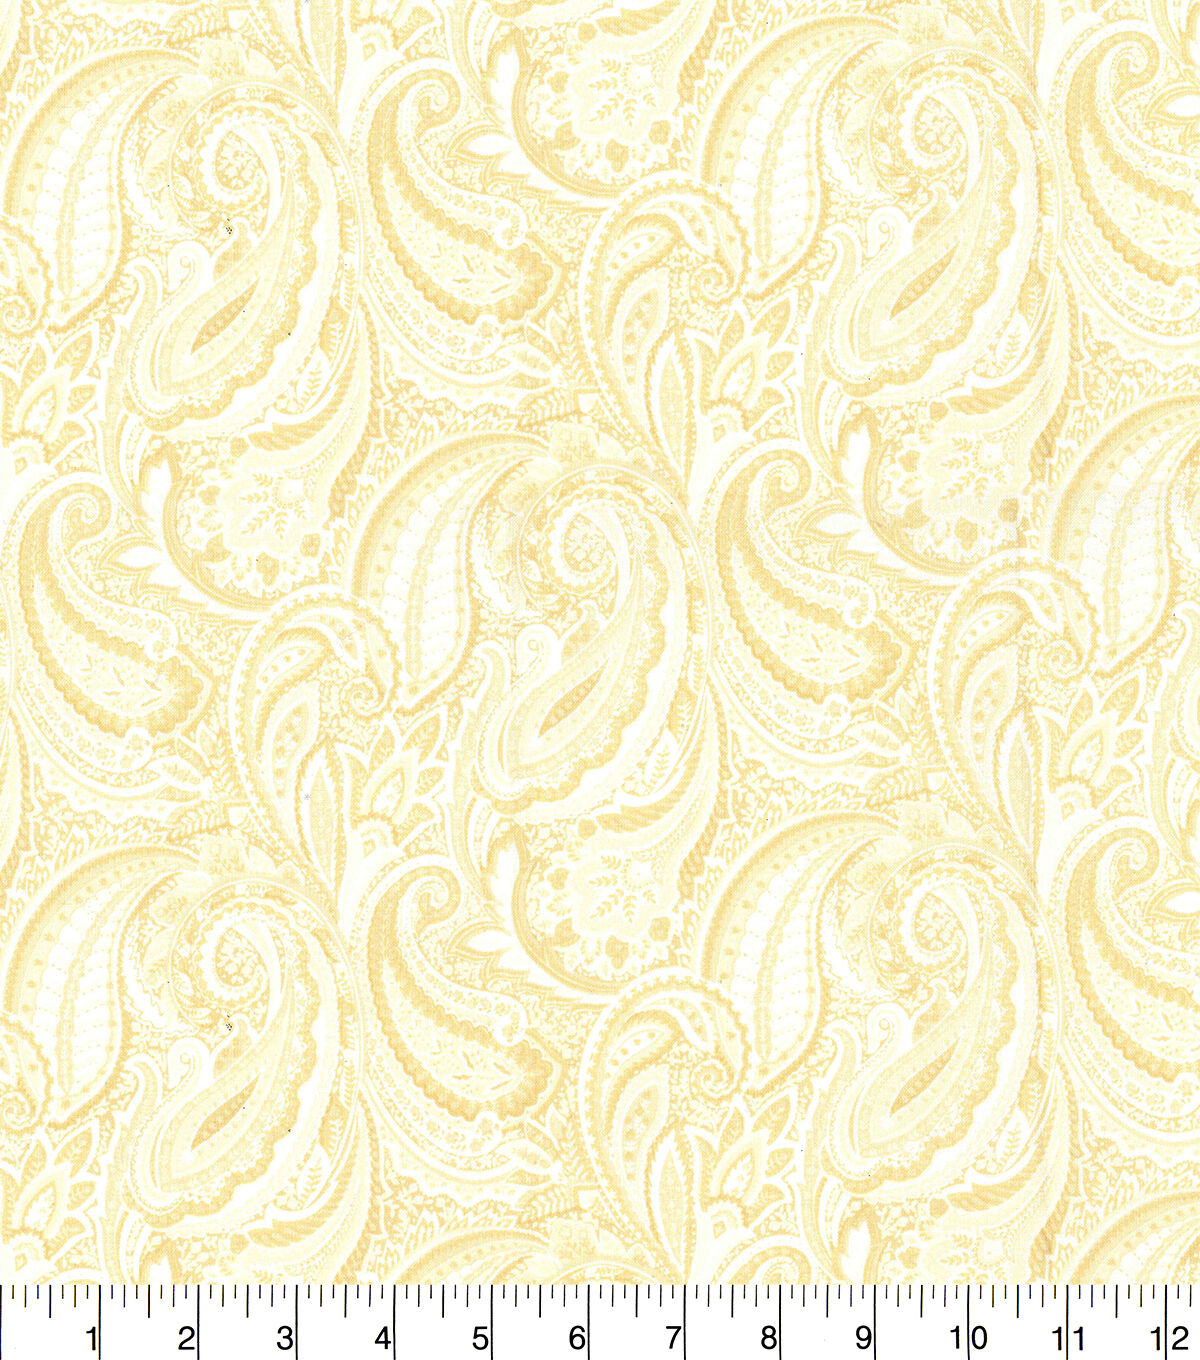 Calico Cotton Quilting Fabric #1665 Brown on White By the Yard